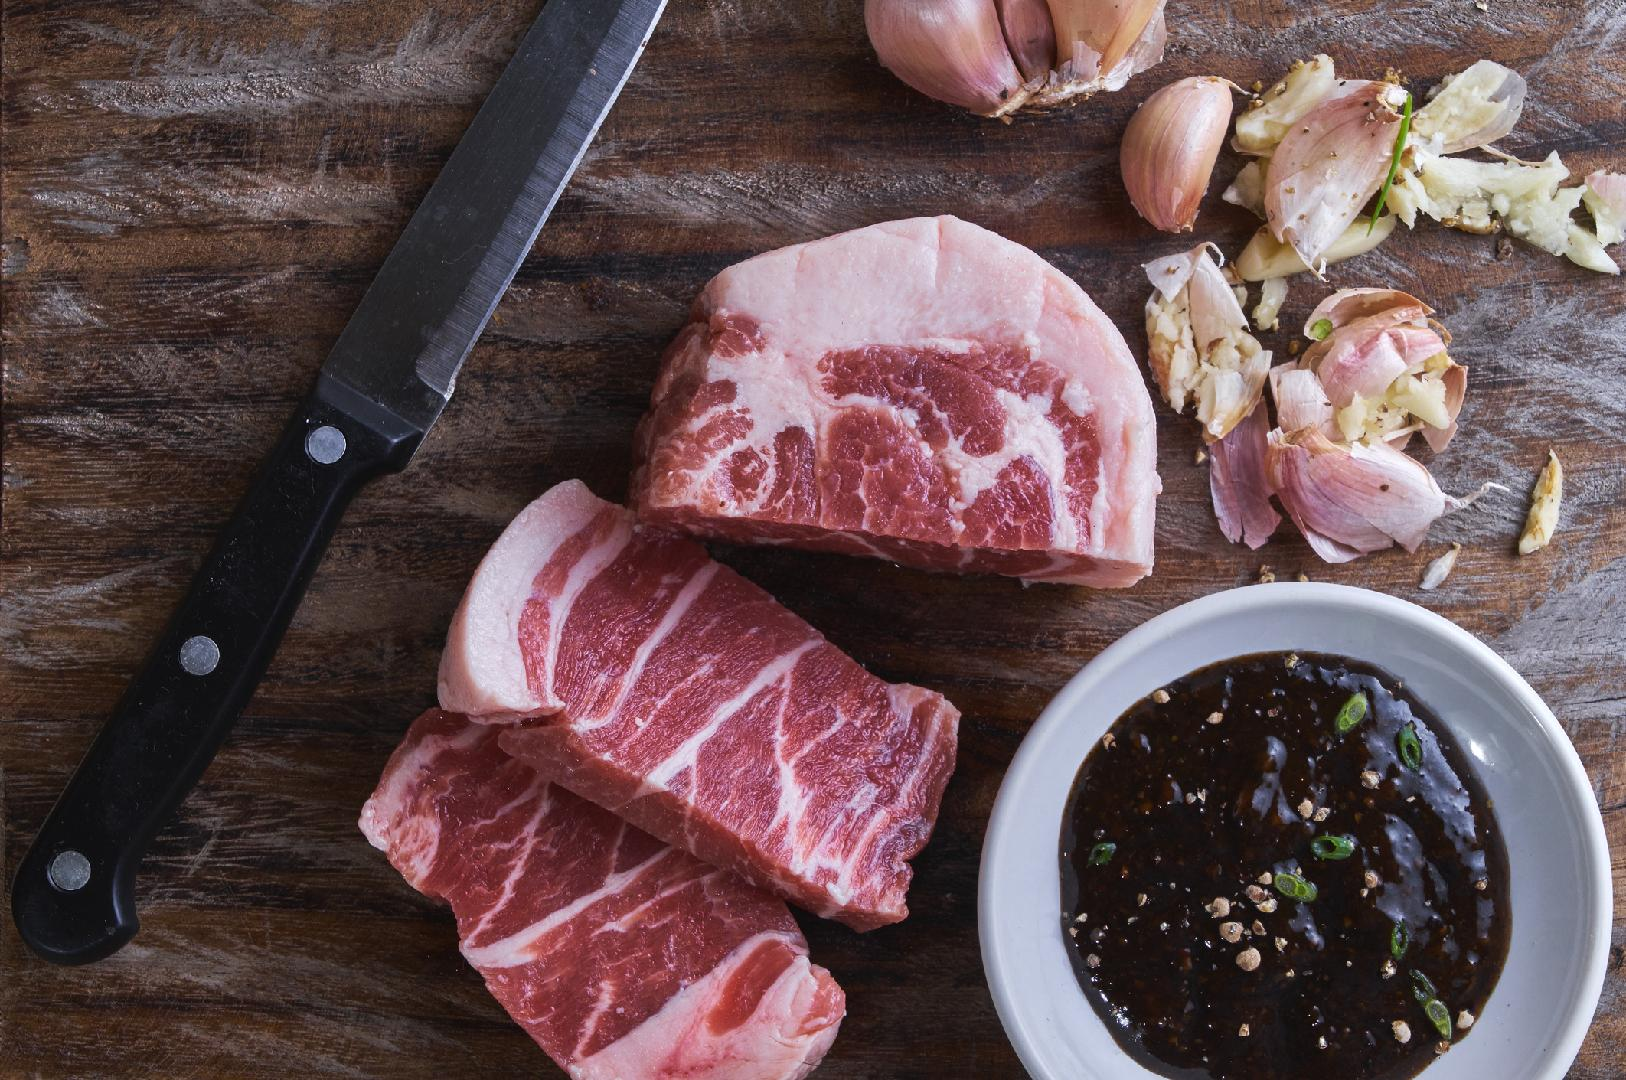 What you should be doing instead of marinating your meat: